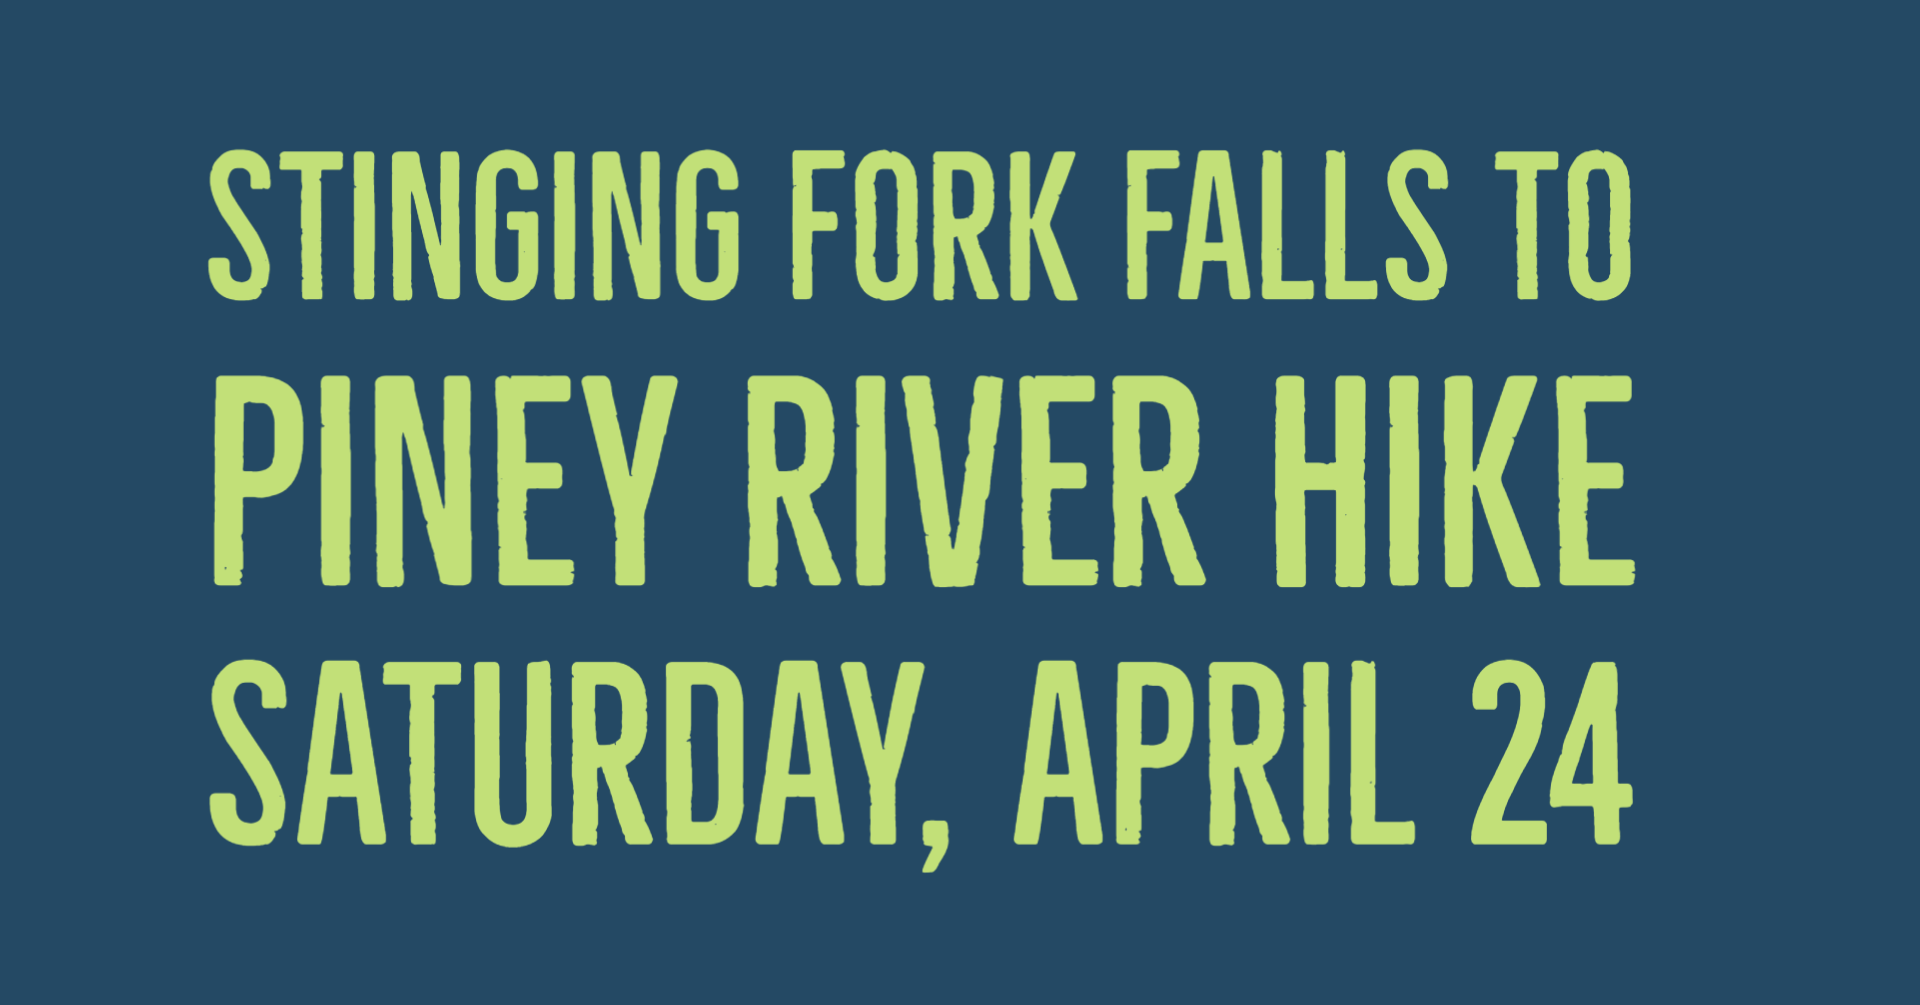 Stinging Fork Falls to Piney River Hike @ Rocky Top/Exxon/McDonald's on US 27 in Spring City, TN